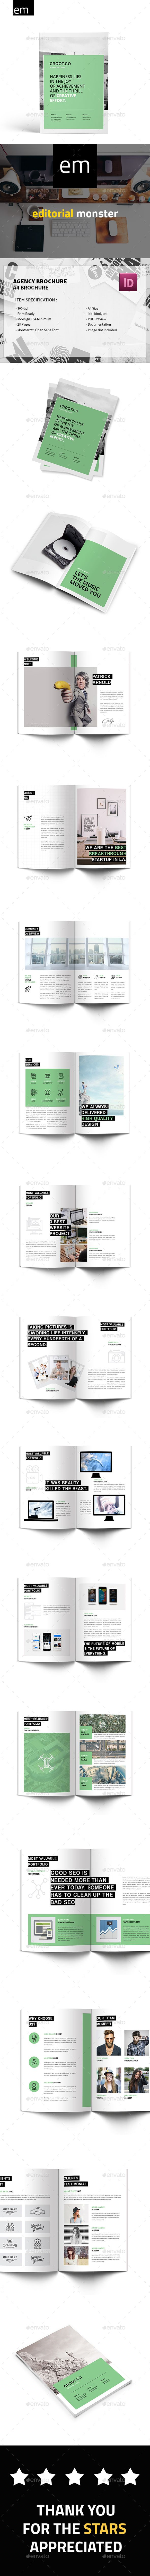 Agency Brochure — InDesign INDD #8.27x11.69 #background • Download ...